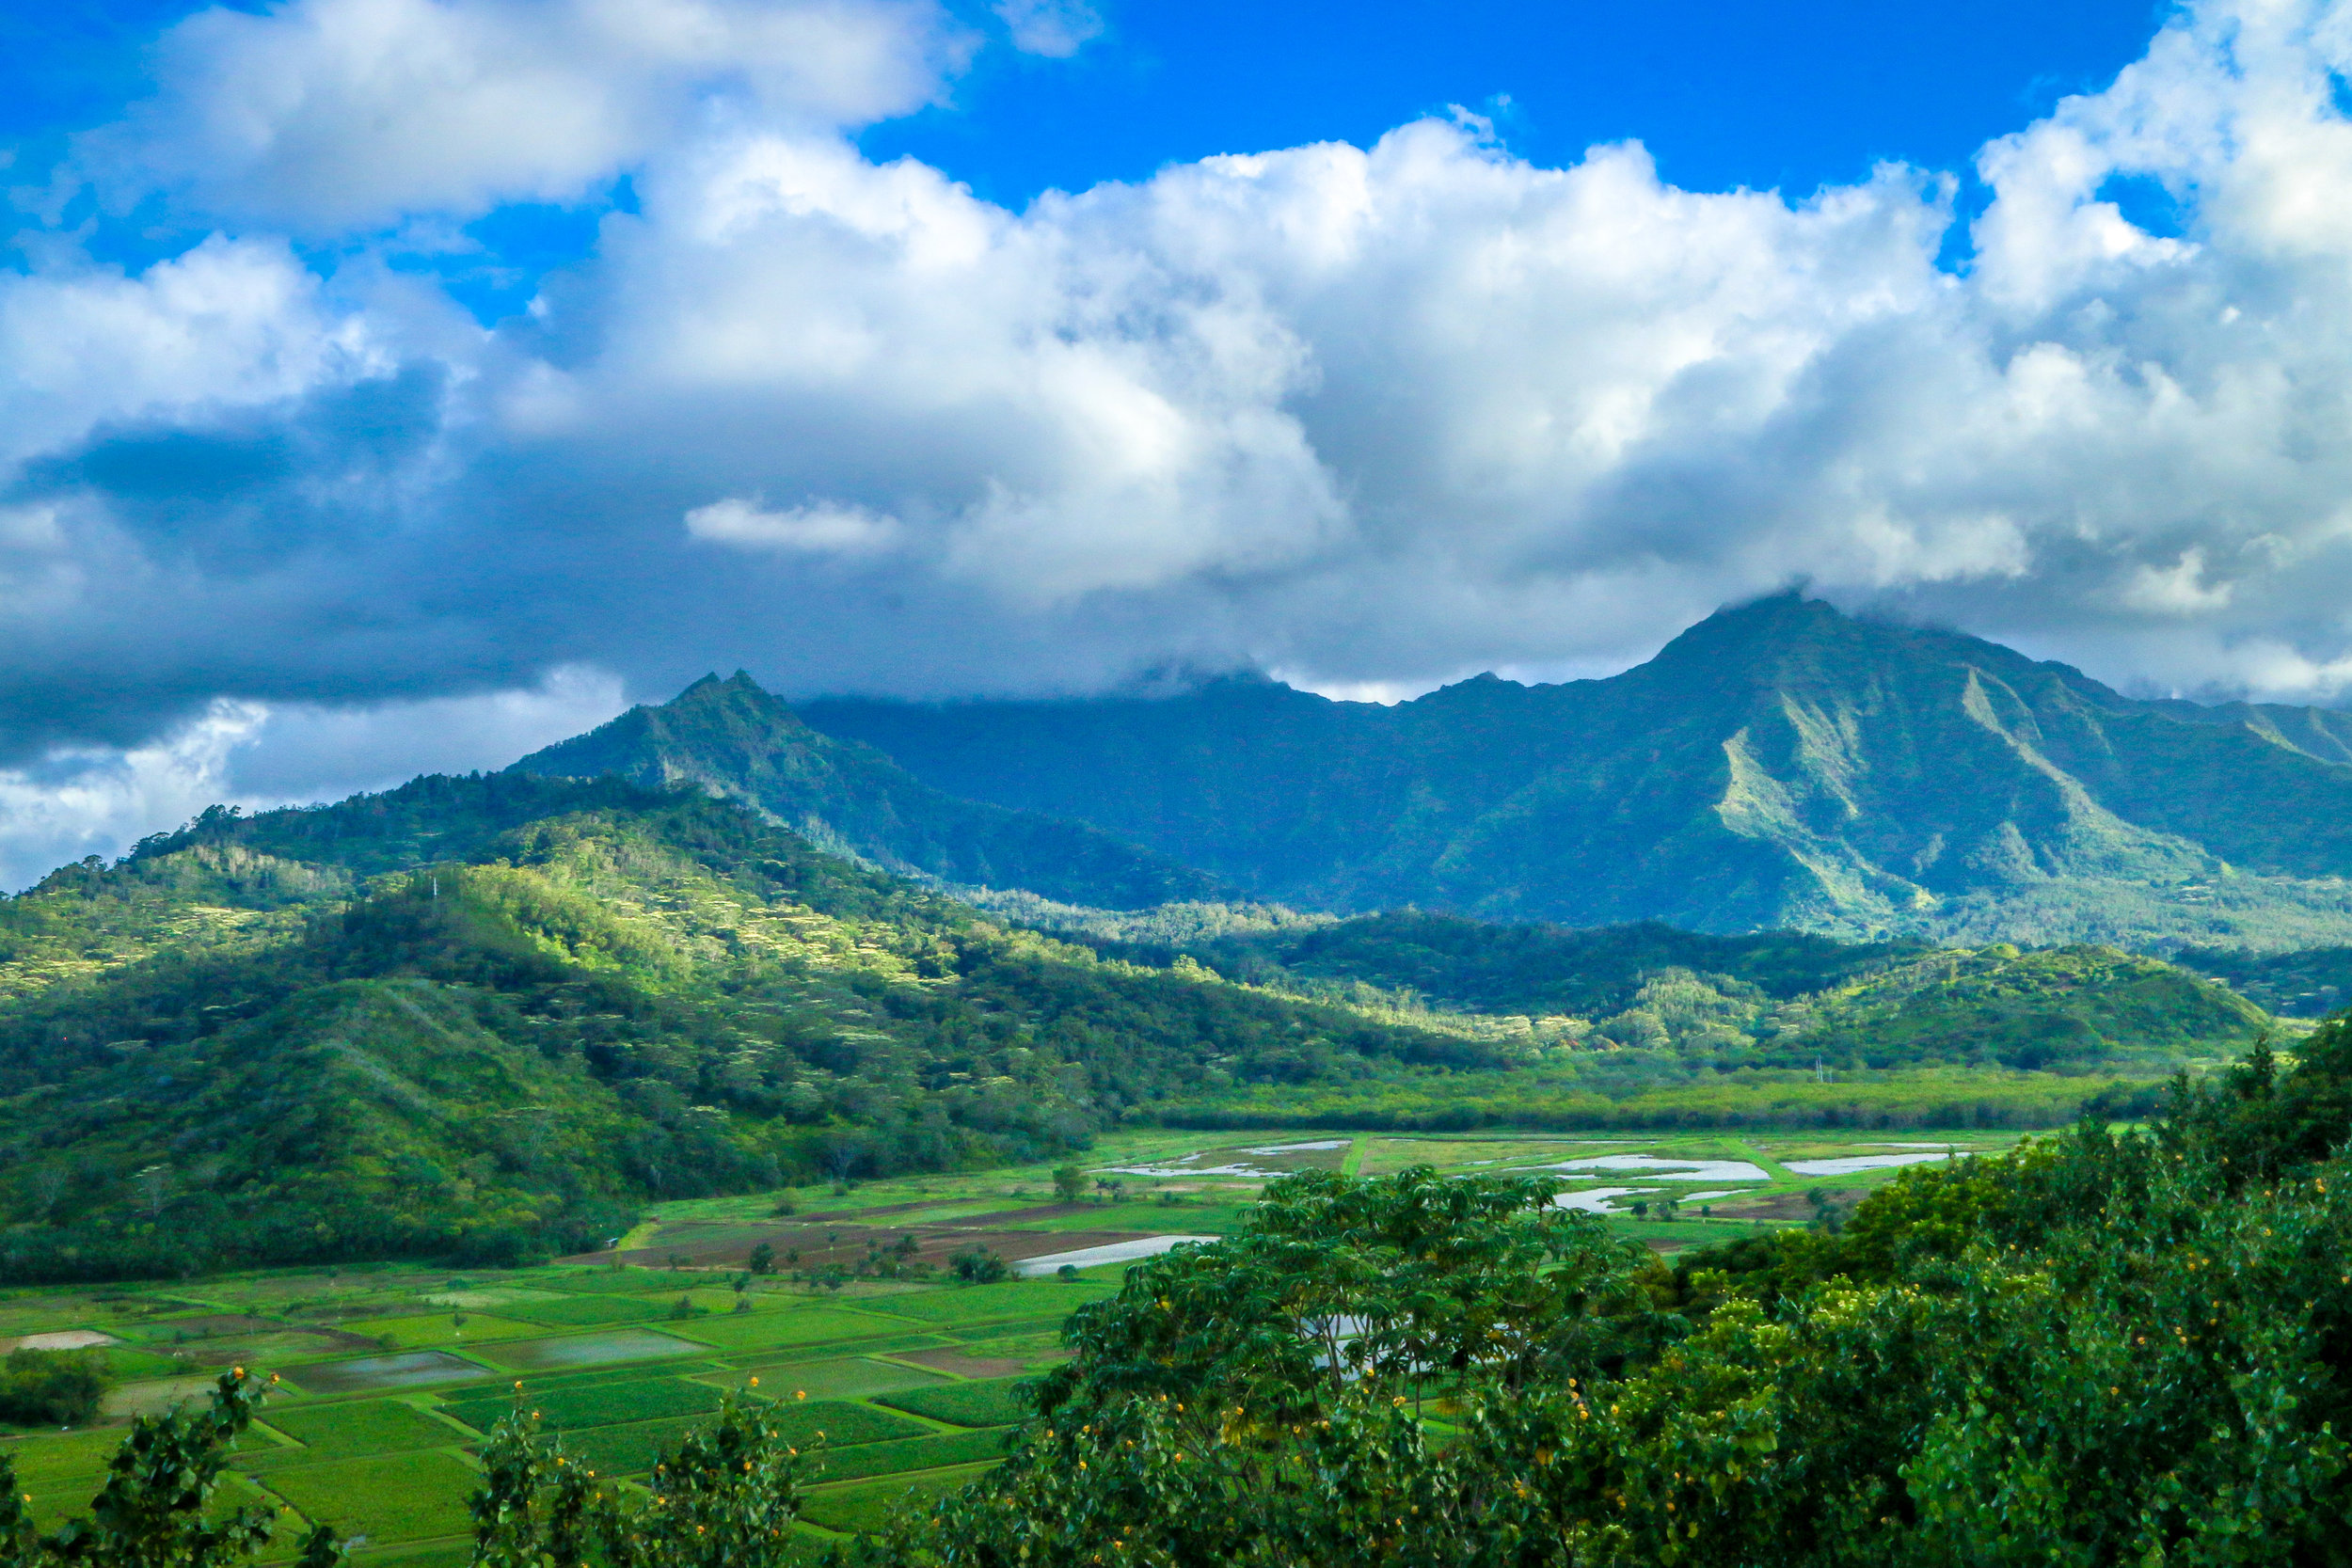 Kauai Hawaii HI photos photography mountains farms